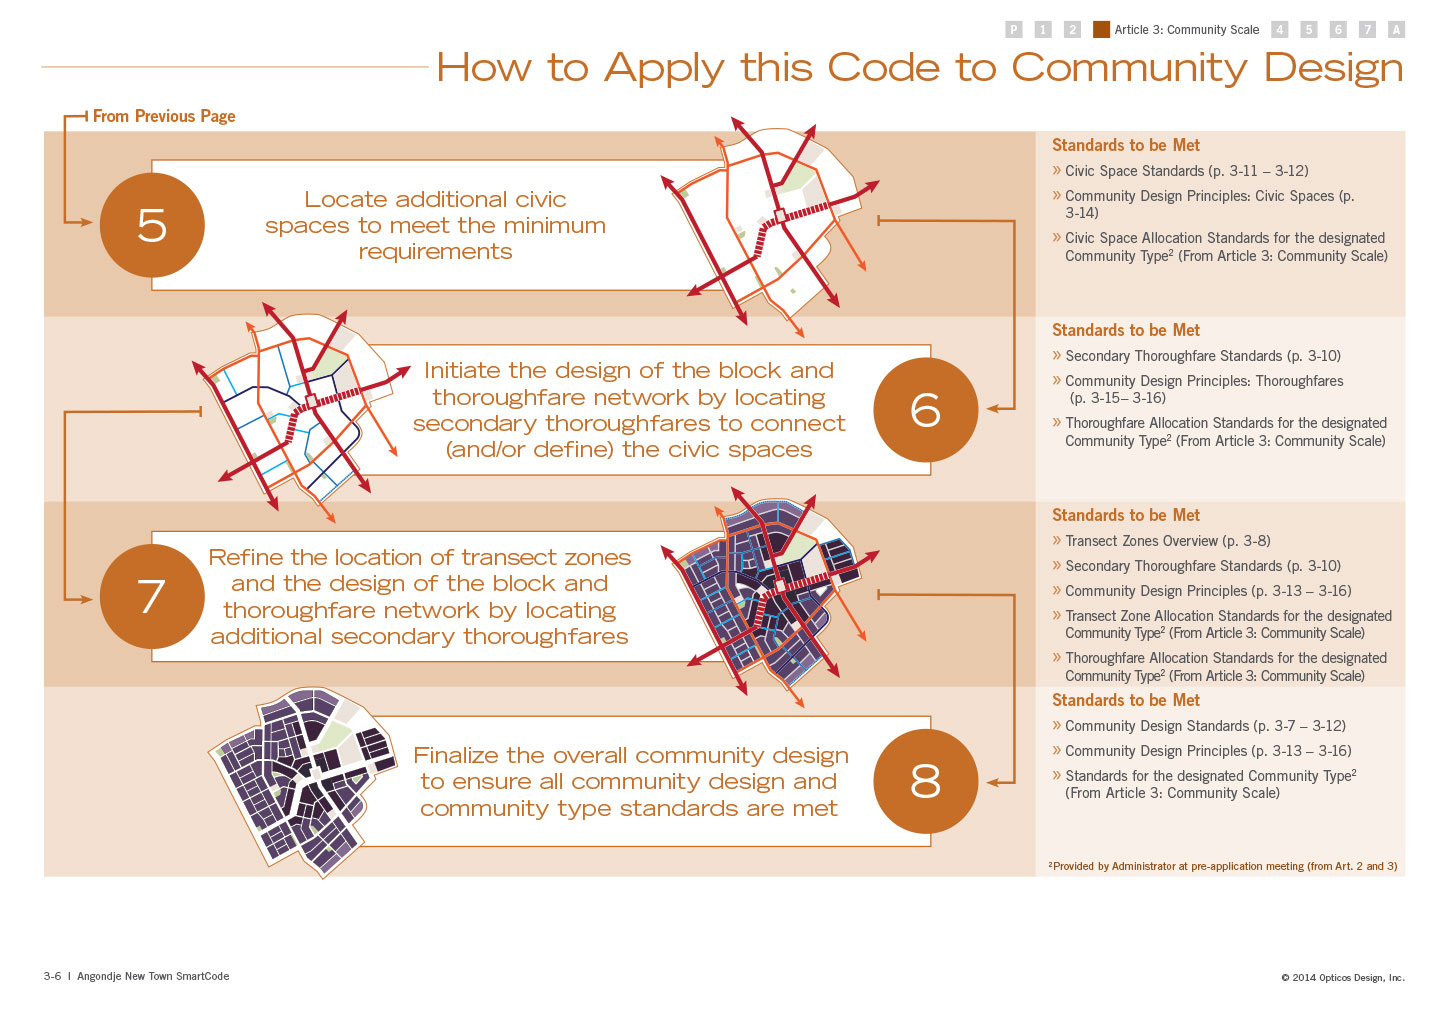 How to Apply the Code to Community Design, continuation of the previous page illustrating how to use the code for community design